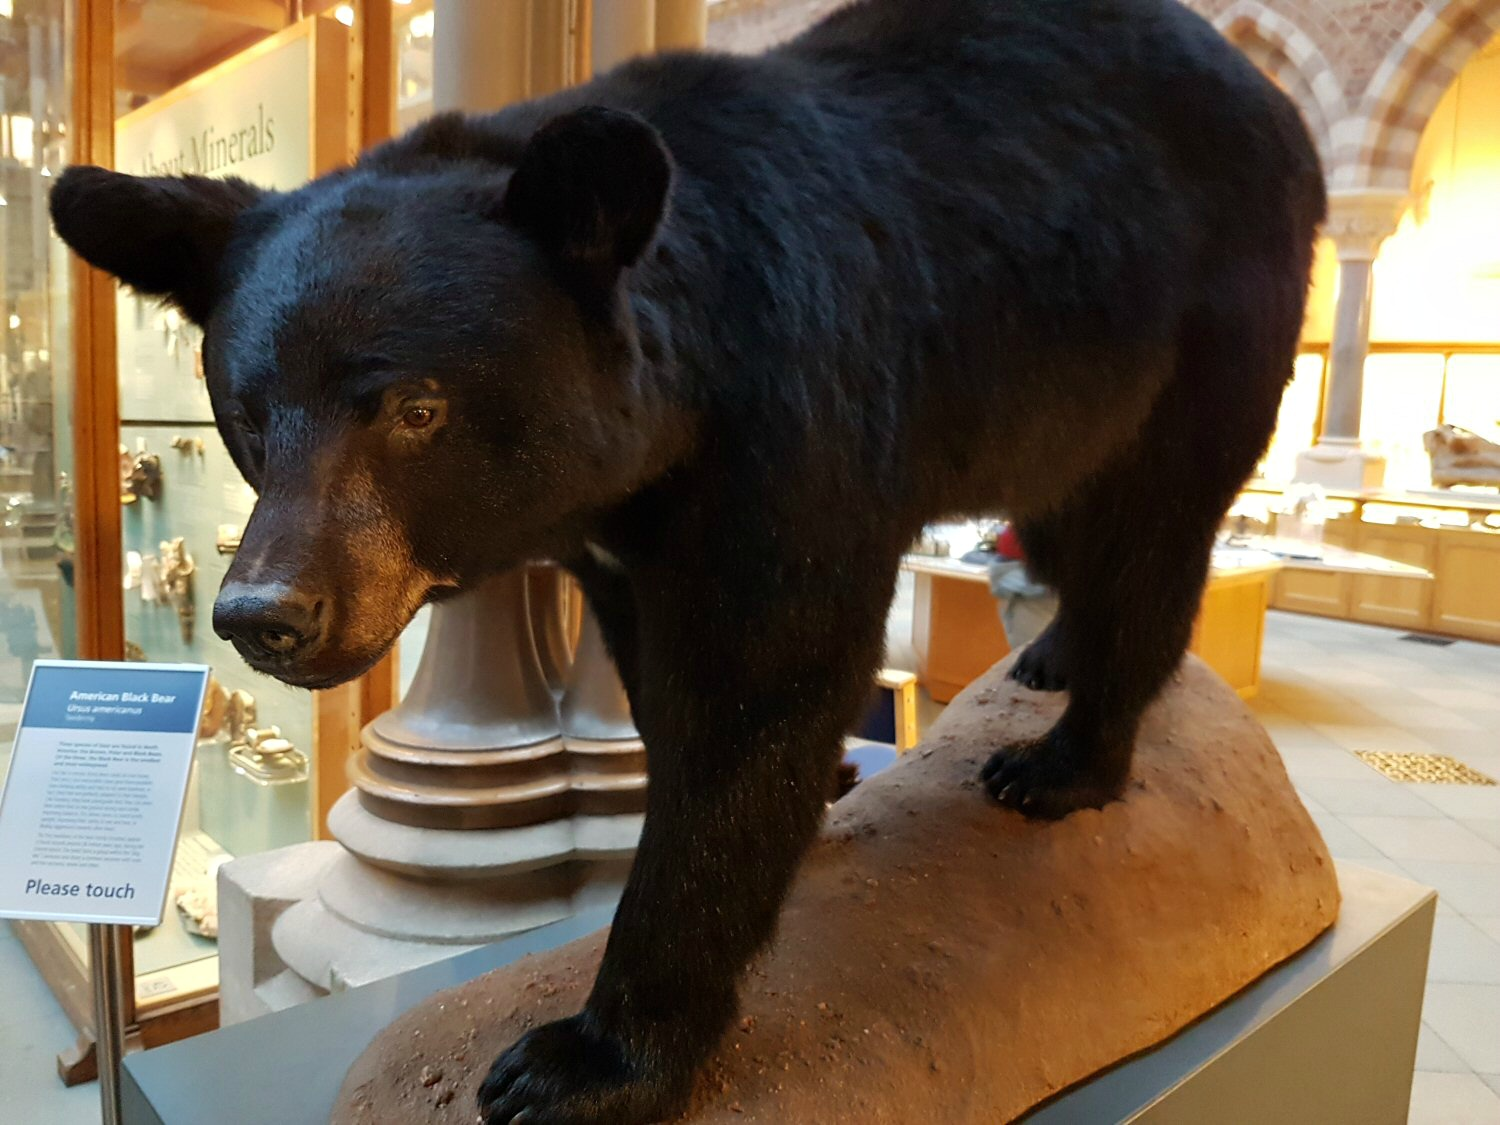 Black bear - one of the exhibits at Oxford University Museum of Natural History. Our Oxford University natural history museum day out